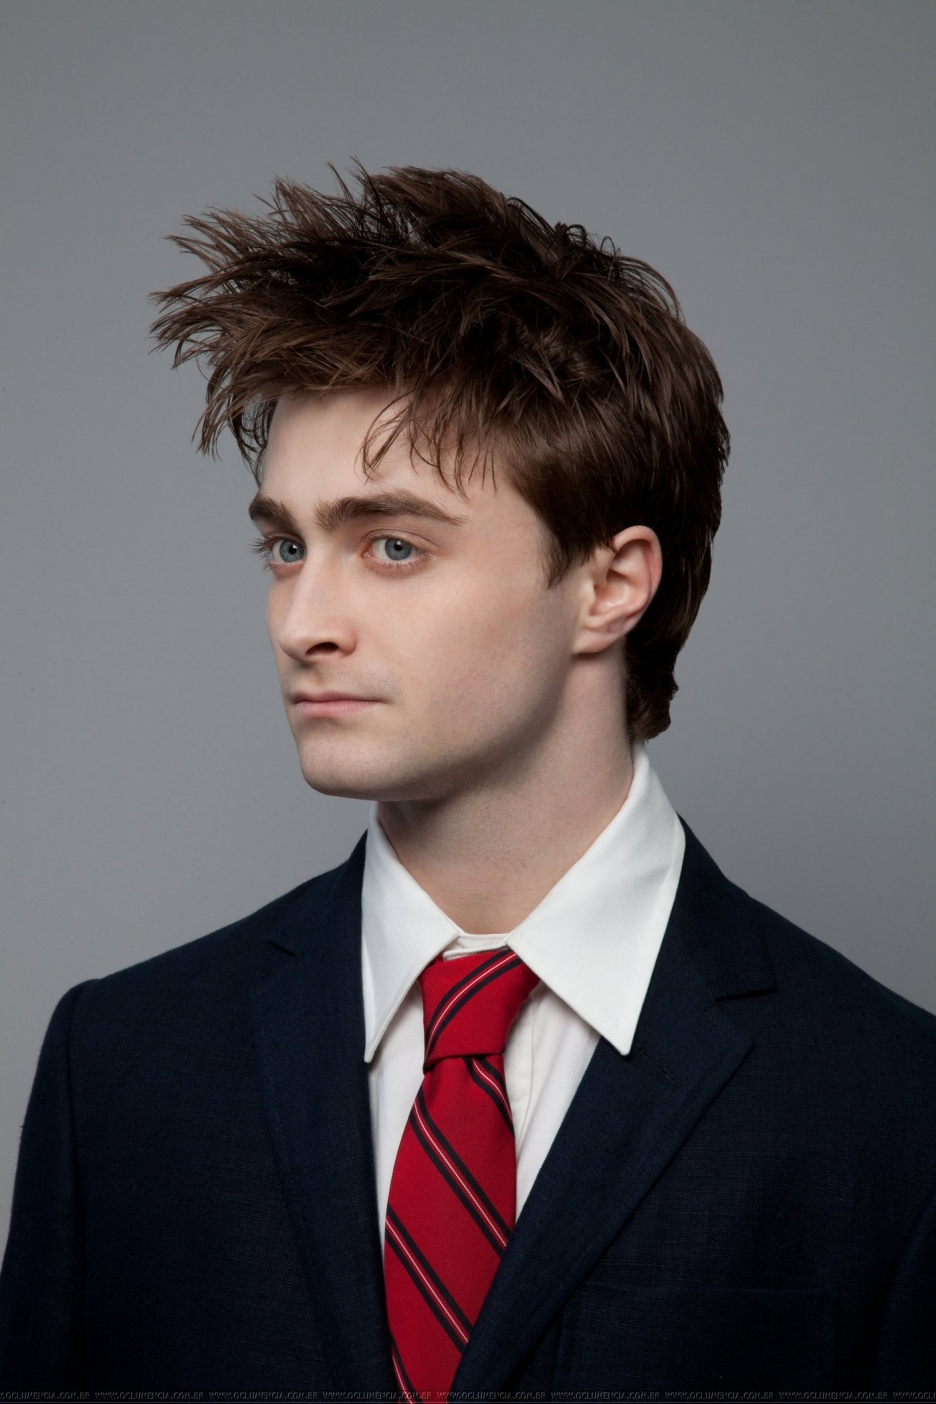 THE MOST BEAUTIFUL PEOPLE ON EARTH: DANIEL RADCLIFFE Daniel Radcliffe